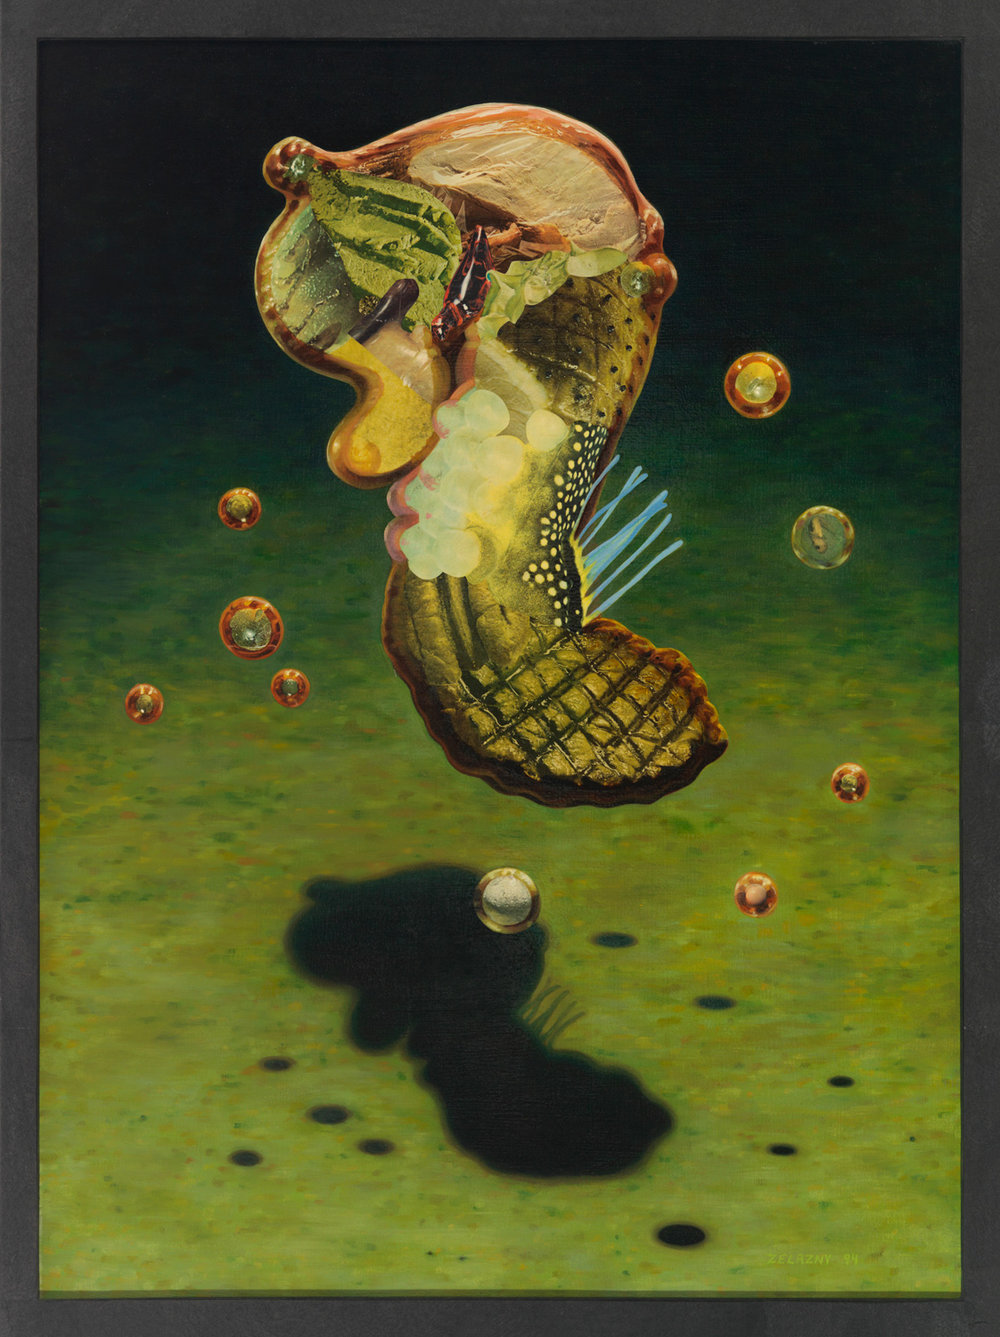 "Cucumbra, 1993, oil, collage on canvas, 43"" x 32"""